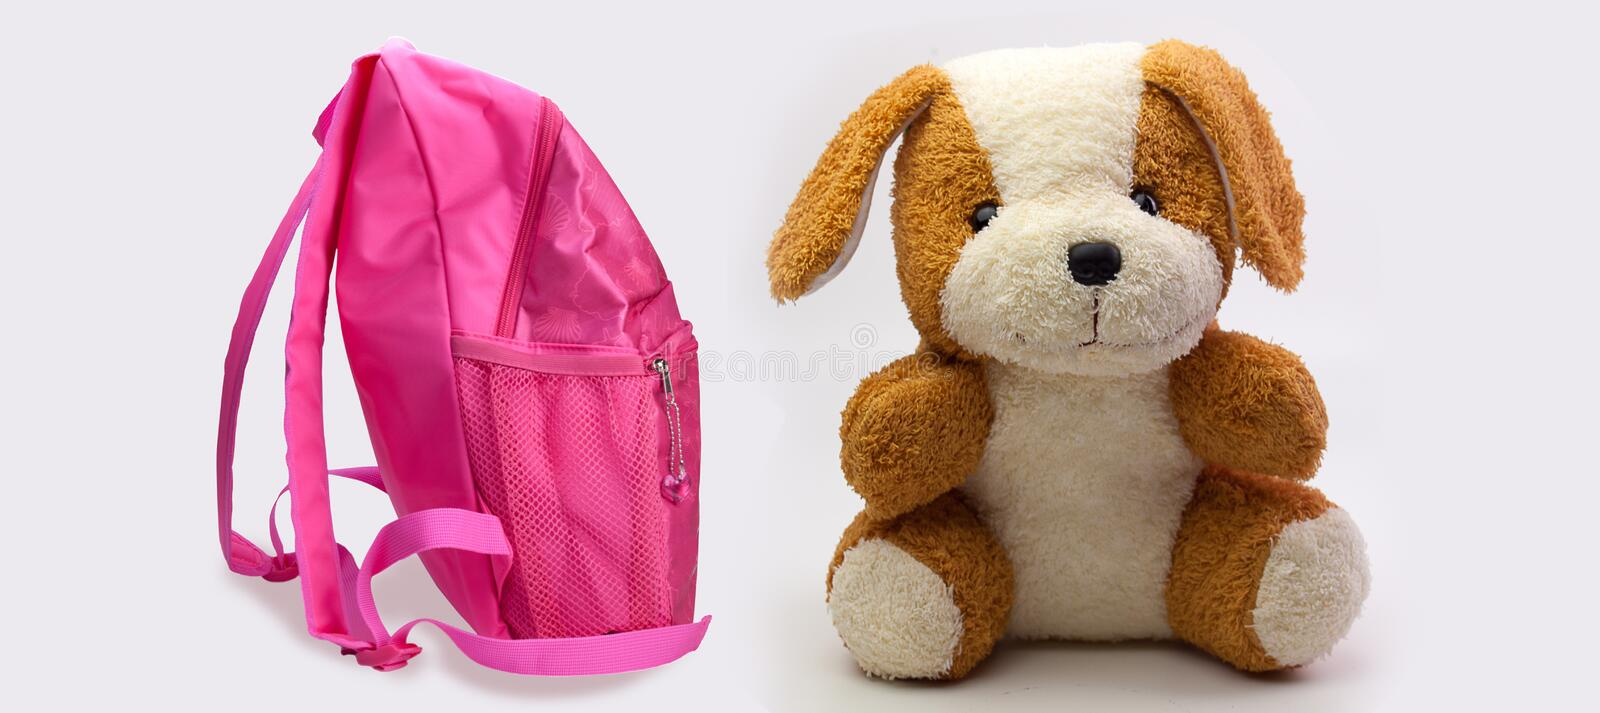 School backpack for girls and dog doll. On white background stock image